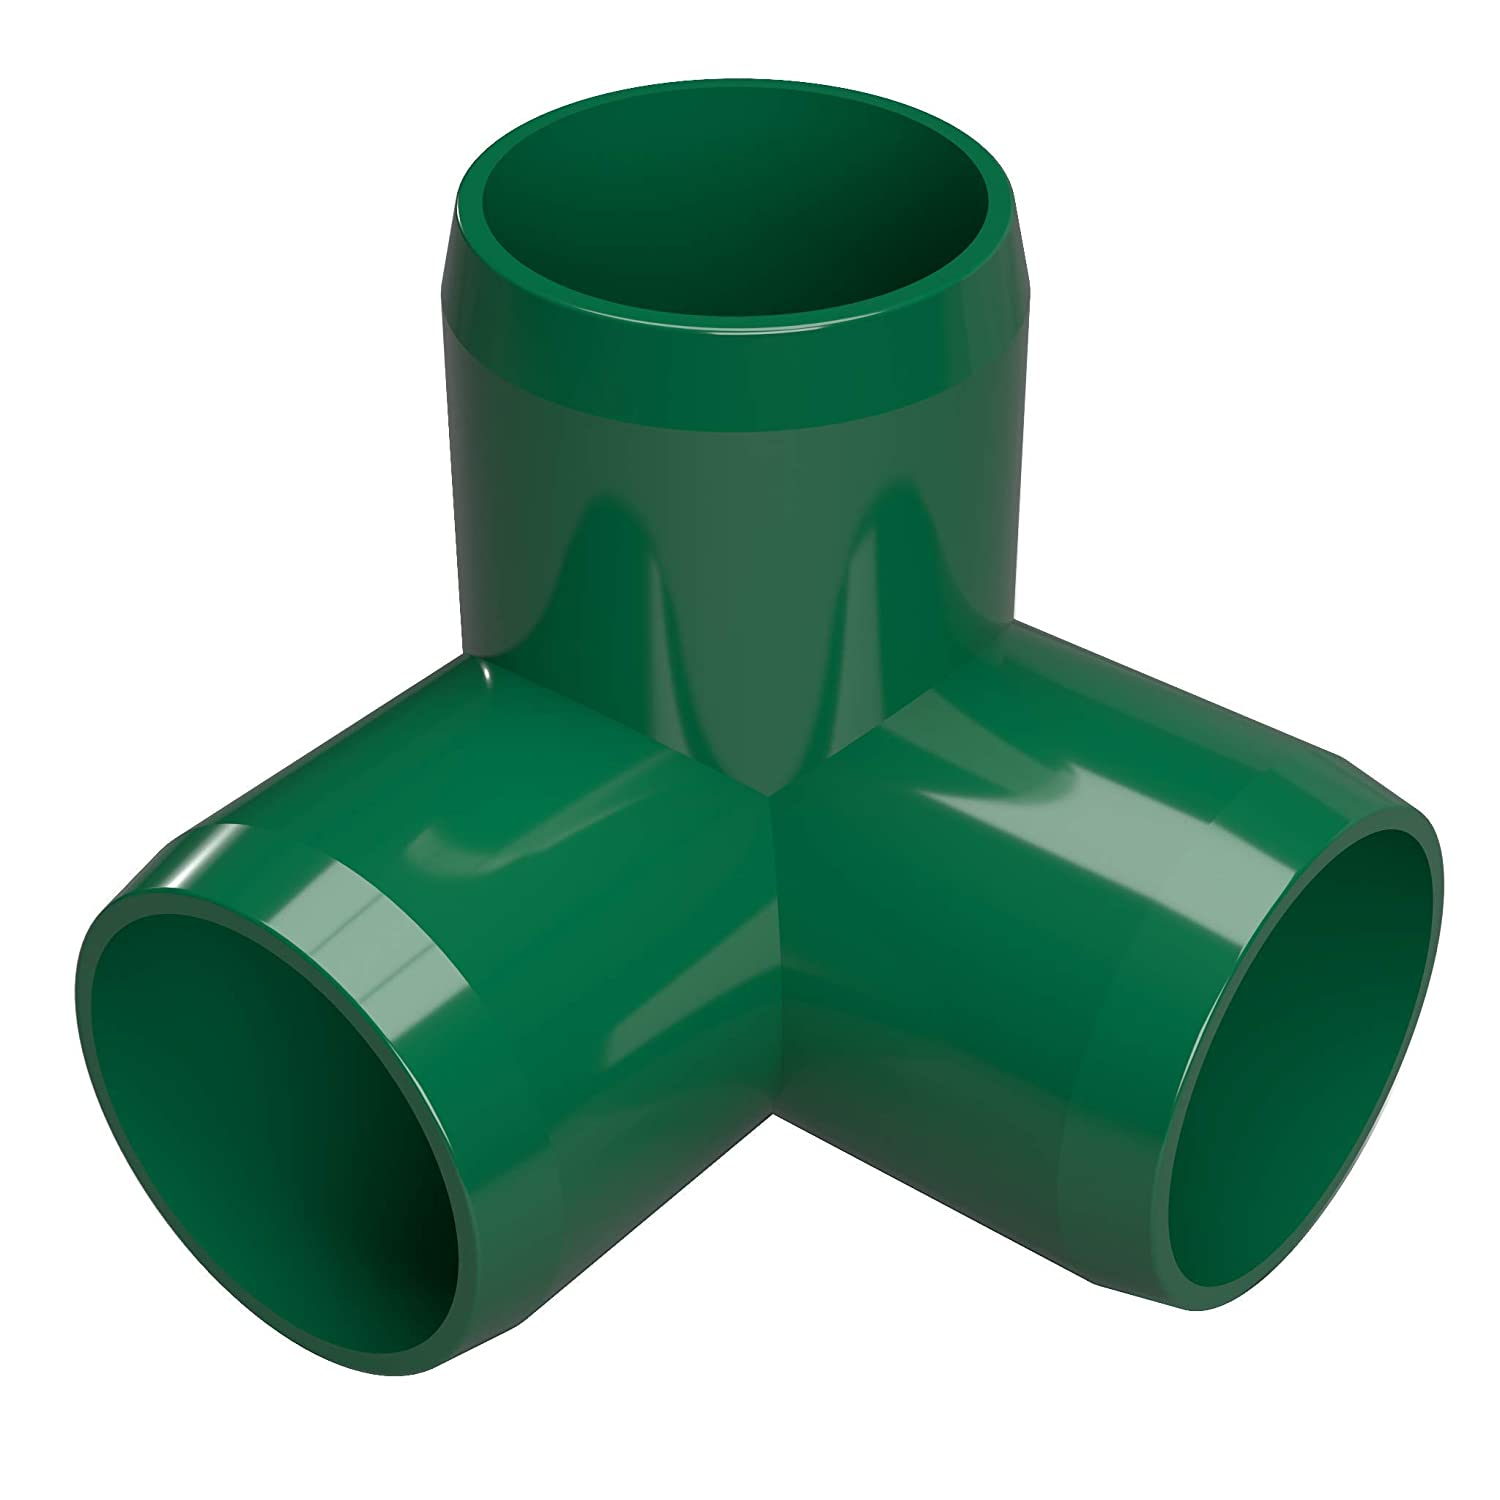 FORMUFIT F0343WE-GR-8 3-Way Elbow PVC Fitting, Furniture Grade, 3/4' Size, Green (Pack of 8) 3/4 Size